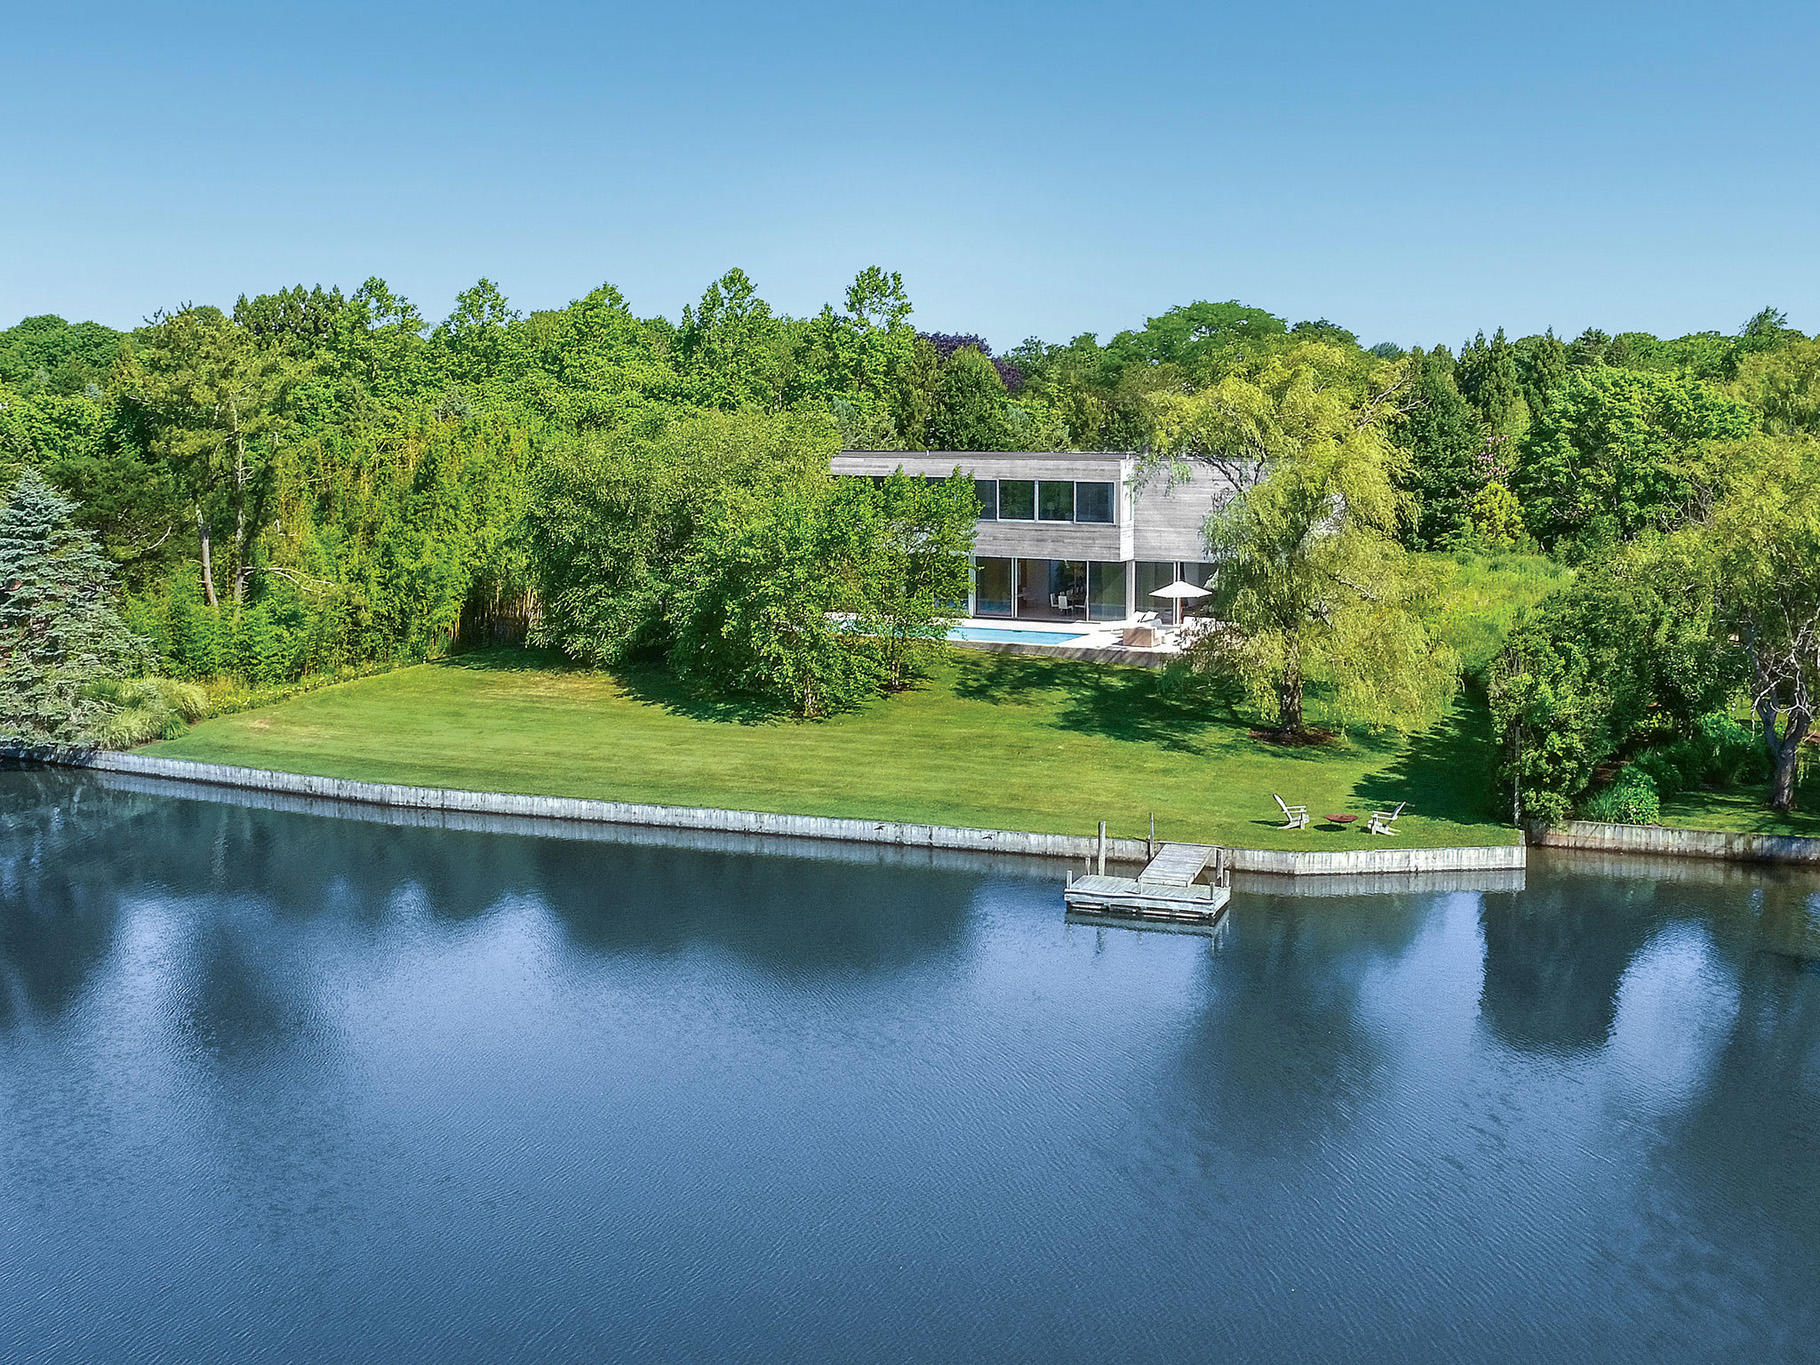 Single Family Home for Sale at Waterfront Modern With Cottage And Dock 66 Cobb Lane, Water Mill, New York